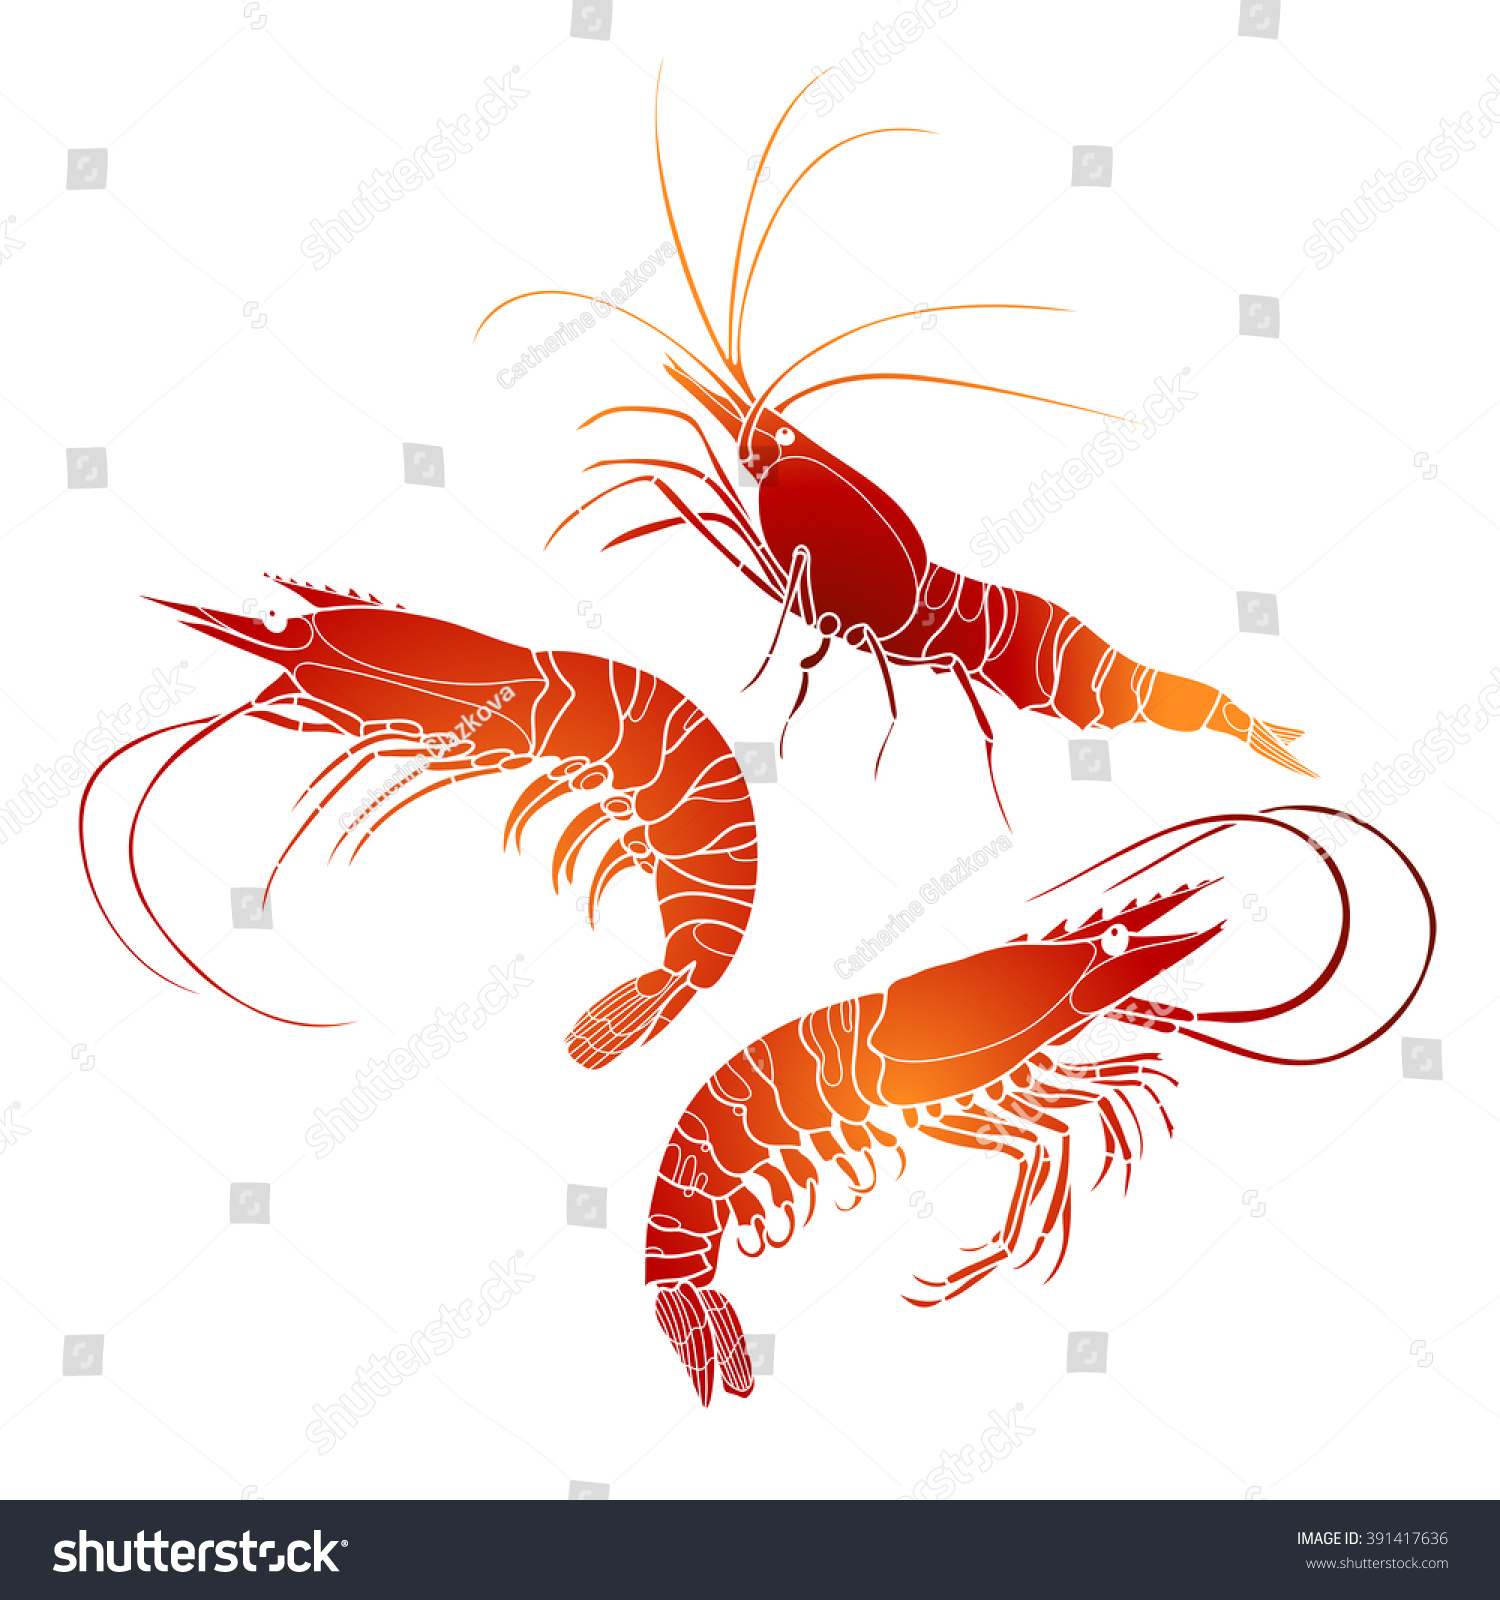 Graphic Vector Shrimps Collection Drawn Line Stock Vector HD ...